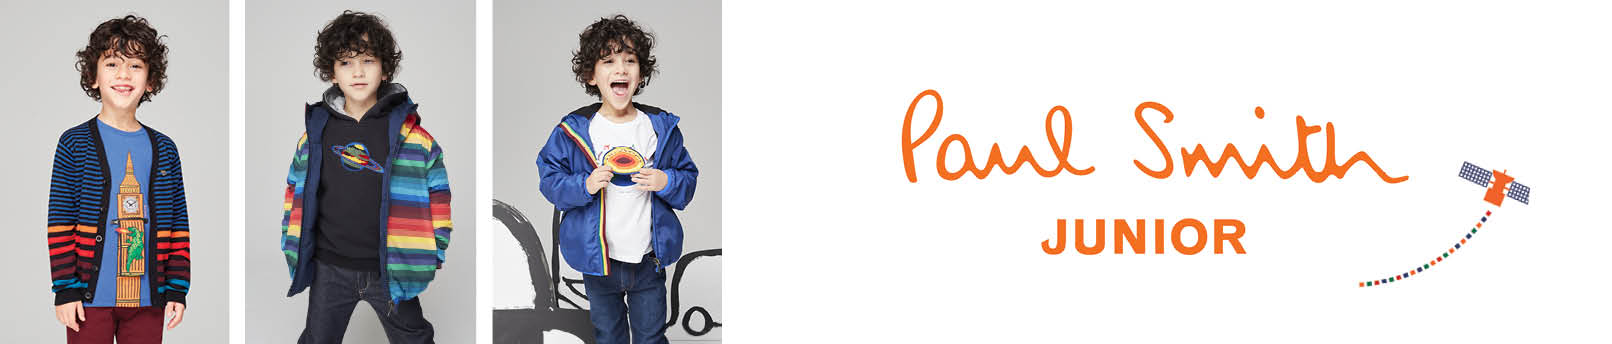 Shop Paul Smith Junior